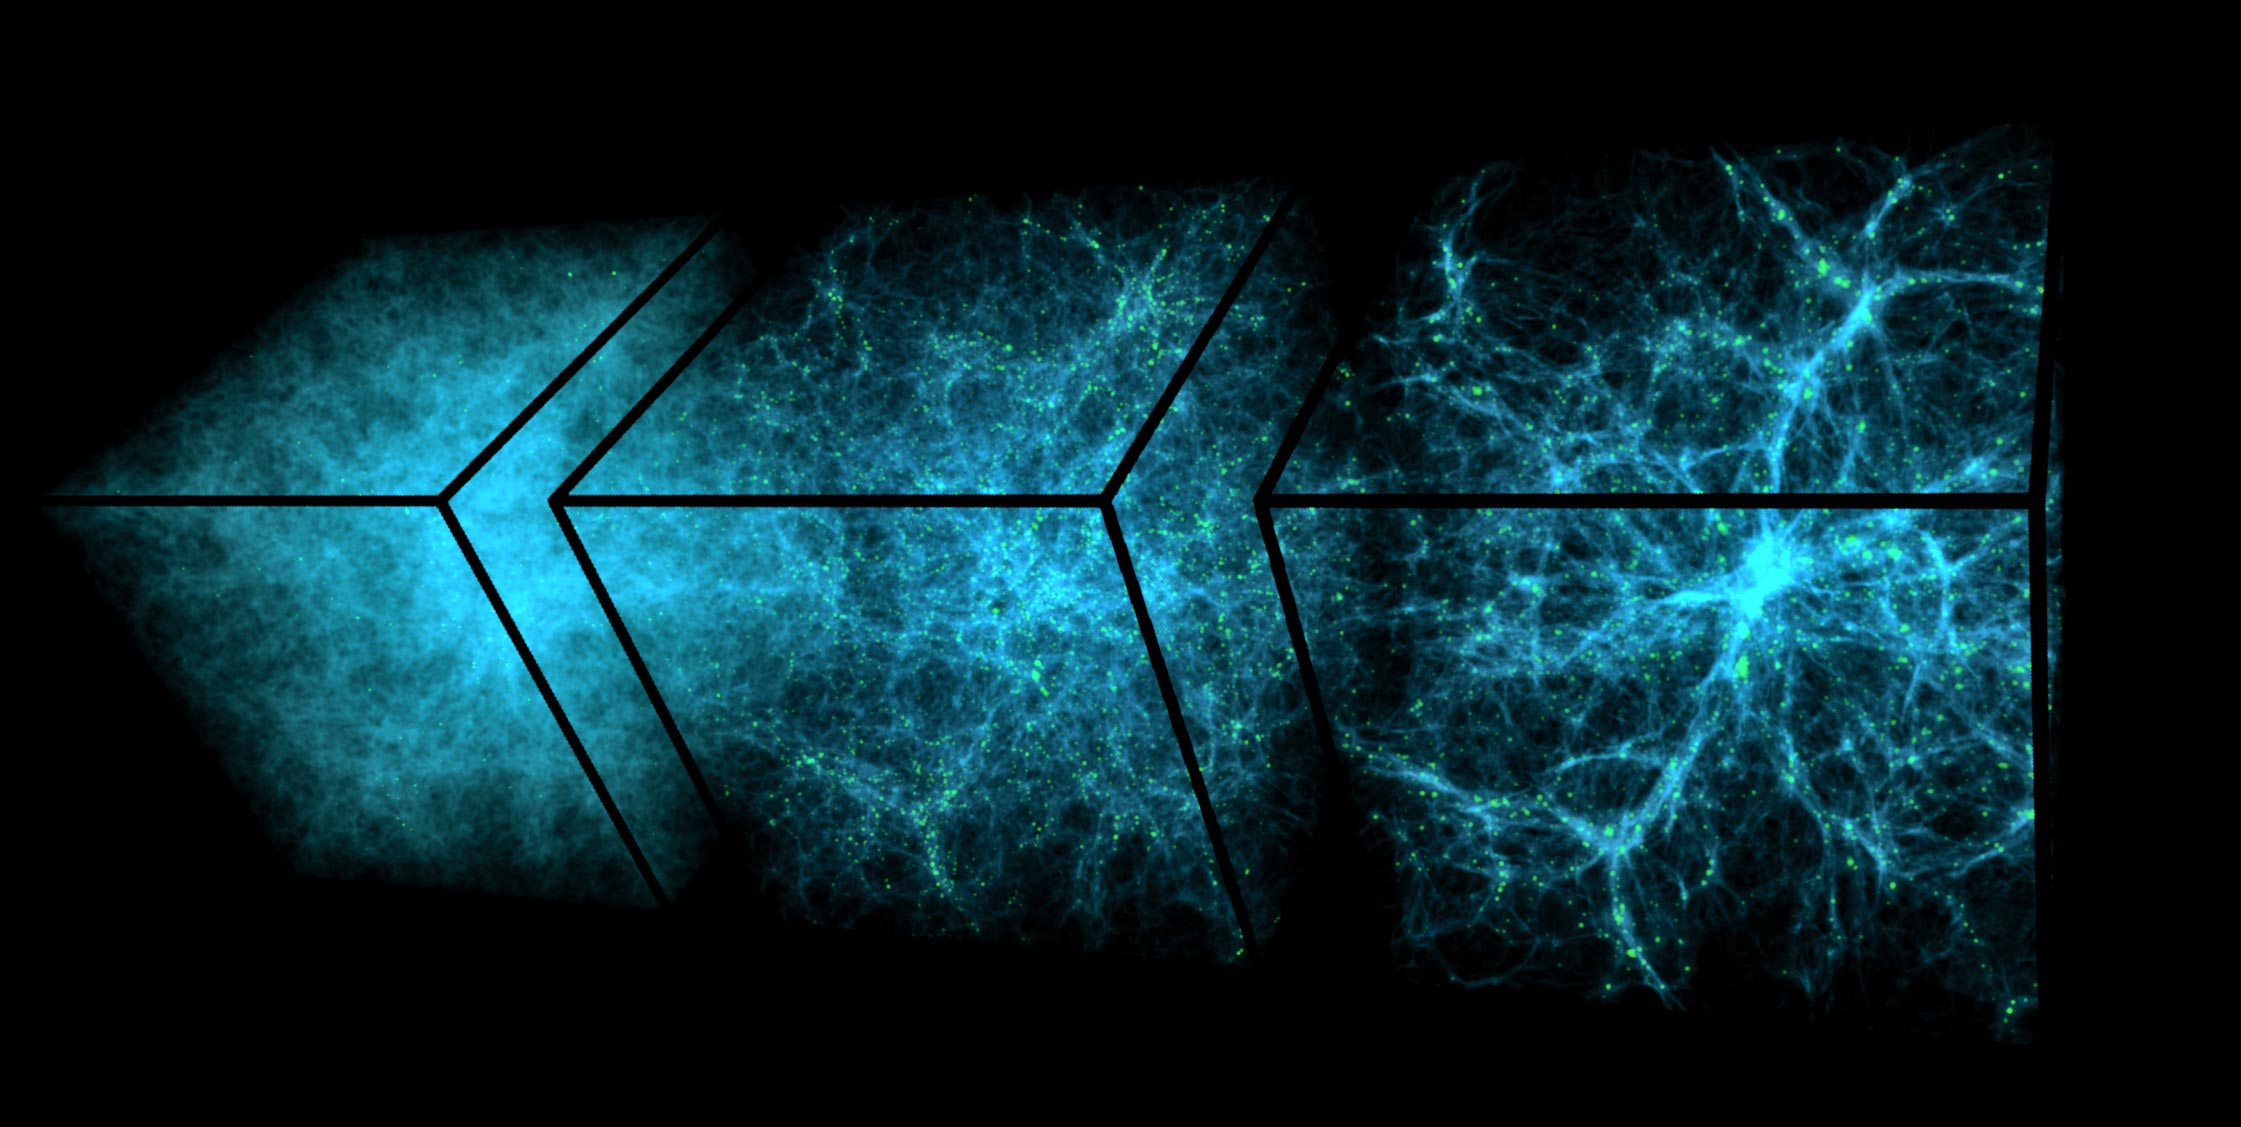 The researchers speculated that the mysterious dark energy lies in a vast sea of intergalactic geodesy